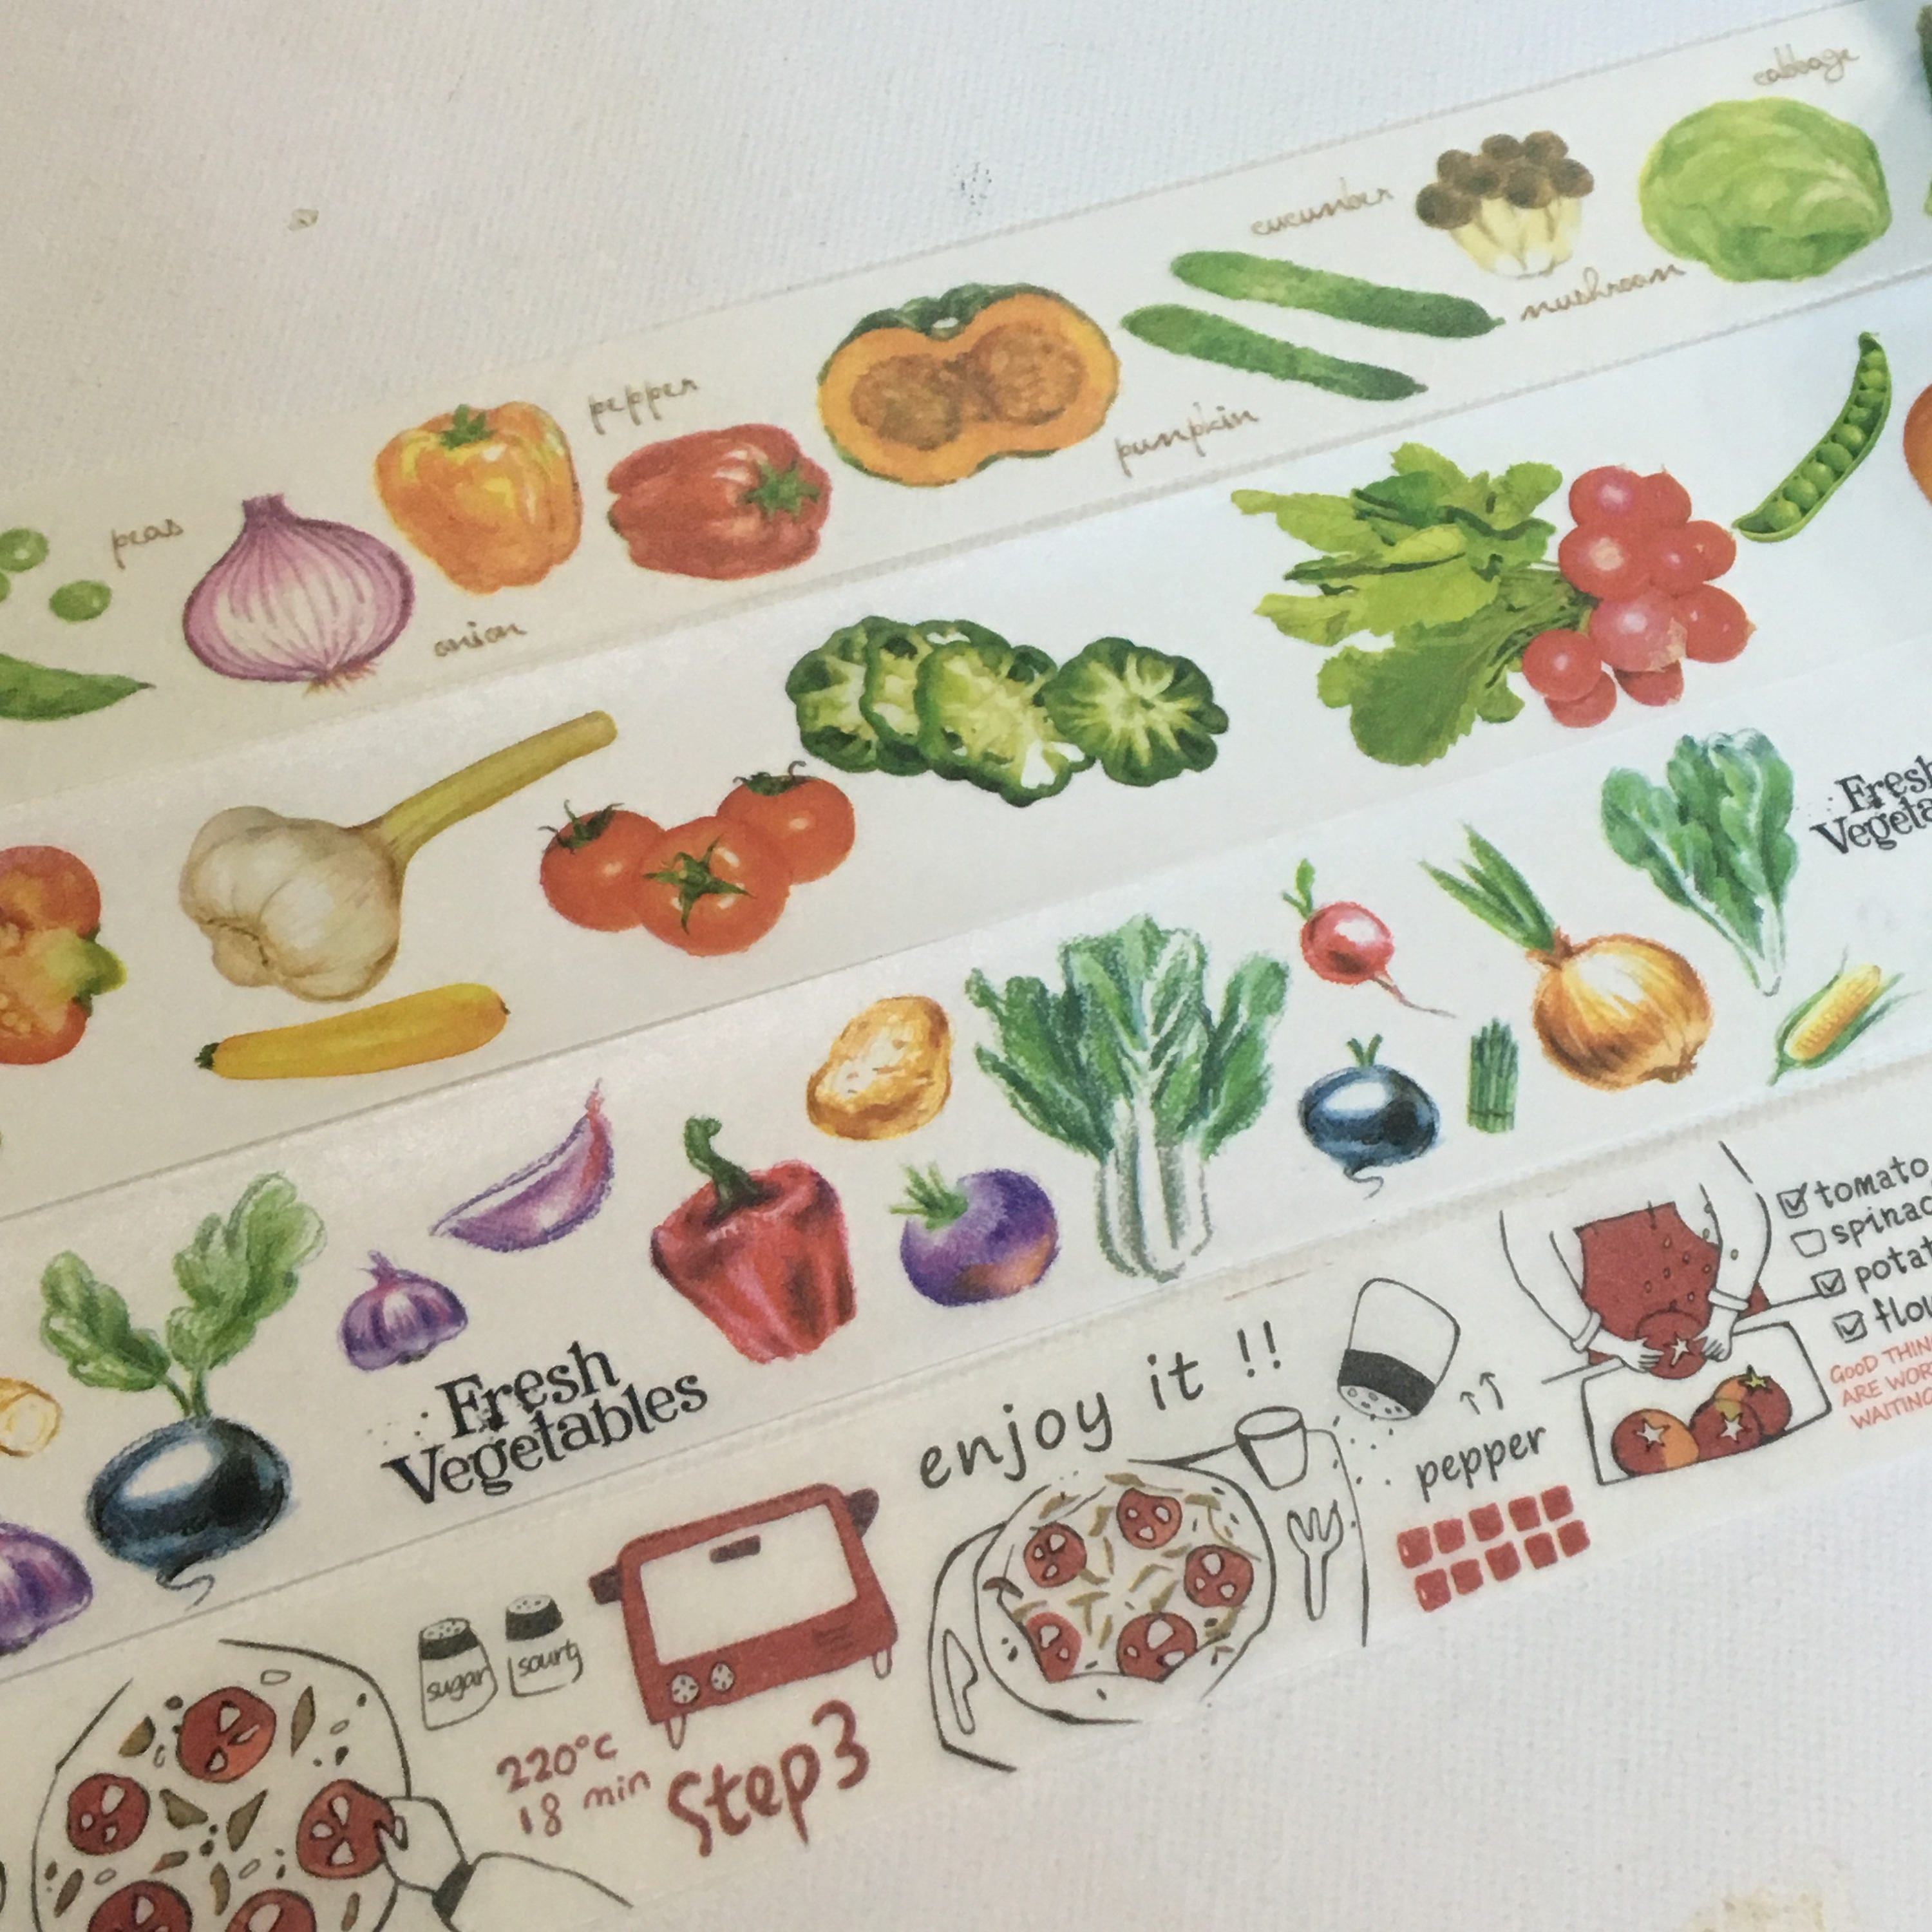 limited edition washi tape fresh produce vegetable and pizza making from collectinglife on etsy. Black Bedroom Furniture Sets. Home Design Ideas